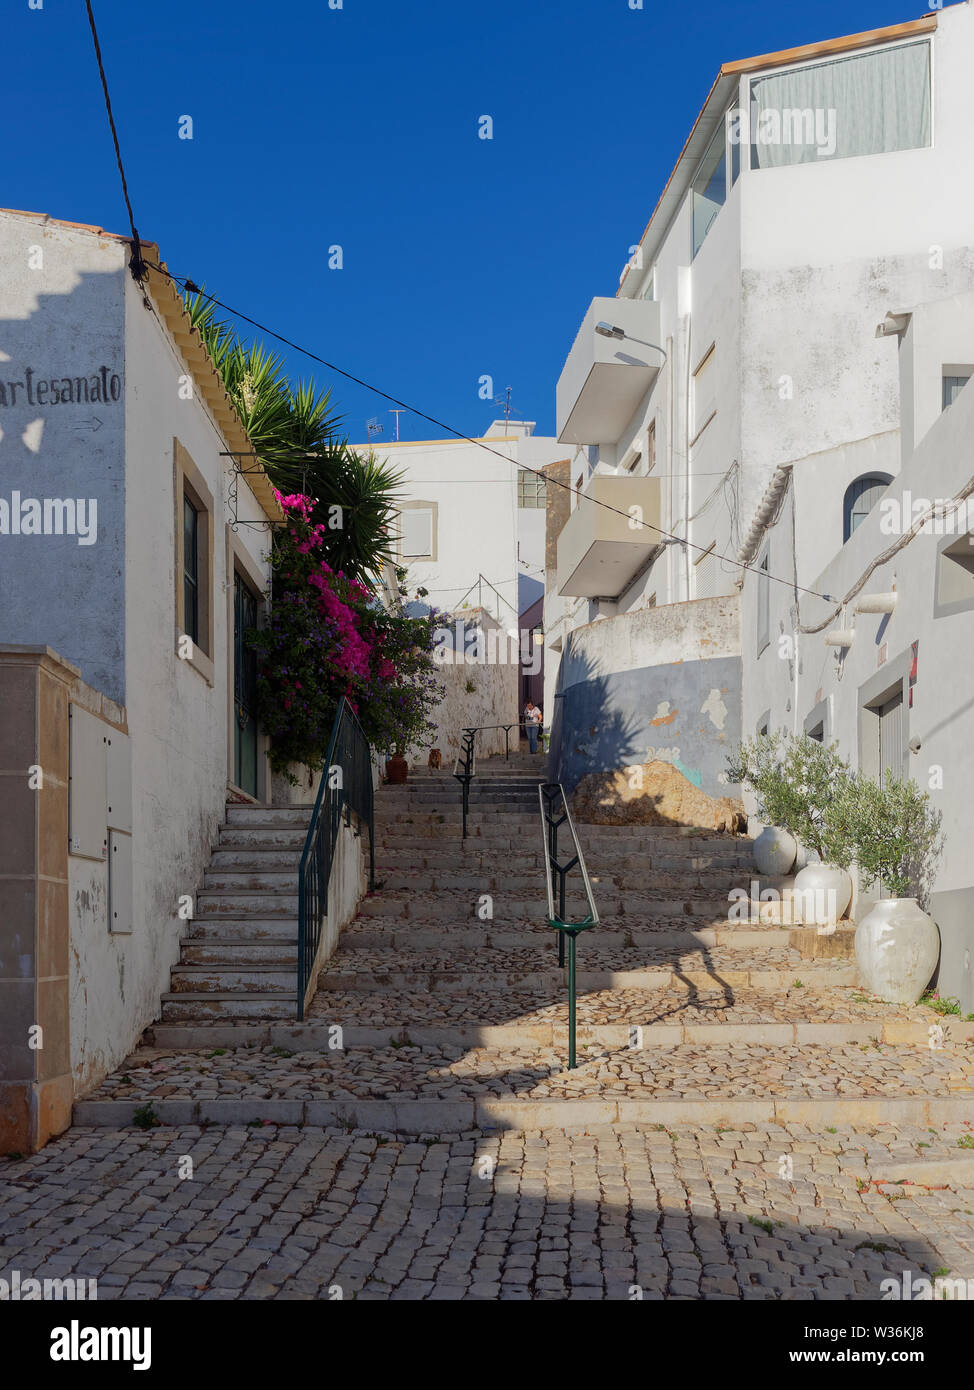 Looking up an old Cobbled street with stone steps and hand rails with a Person walking down between the terraced Houses. Estoi, Portugal. Stock Photo